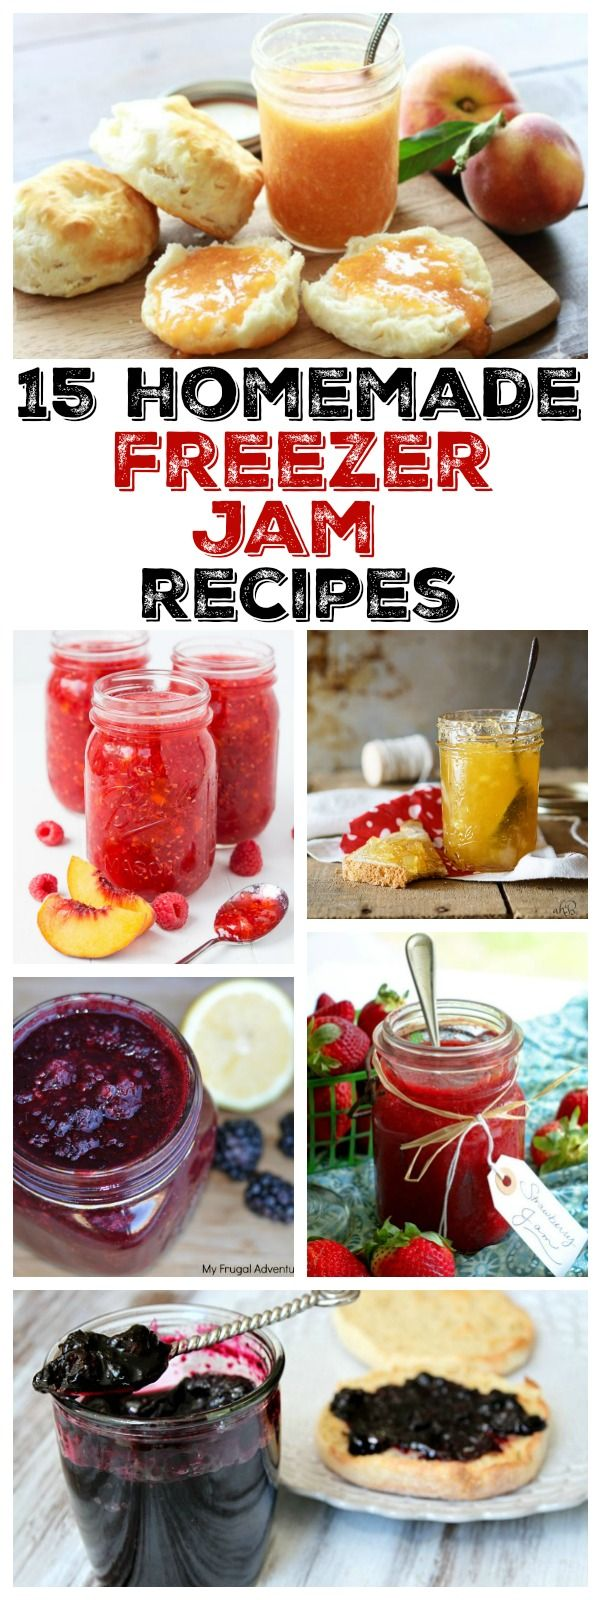 15 EASY homemade freezer jam recipes: strawberry jam, blackberry jam, peach jam, raspberry jam, nectarine jam, plum jam, blueberry jam and MORE!